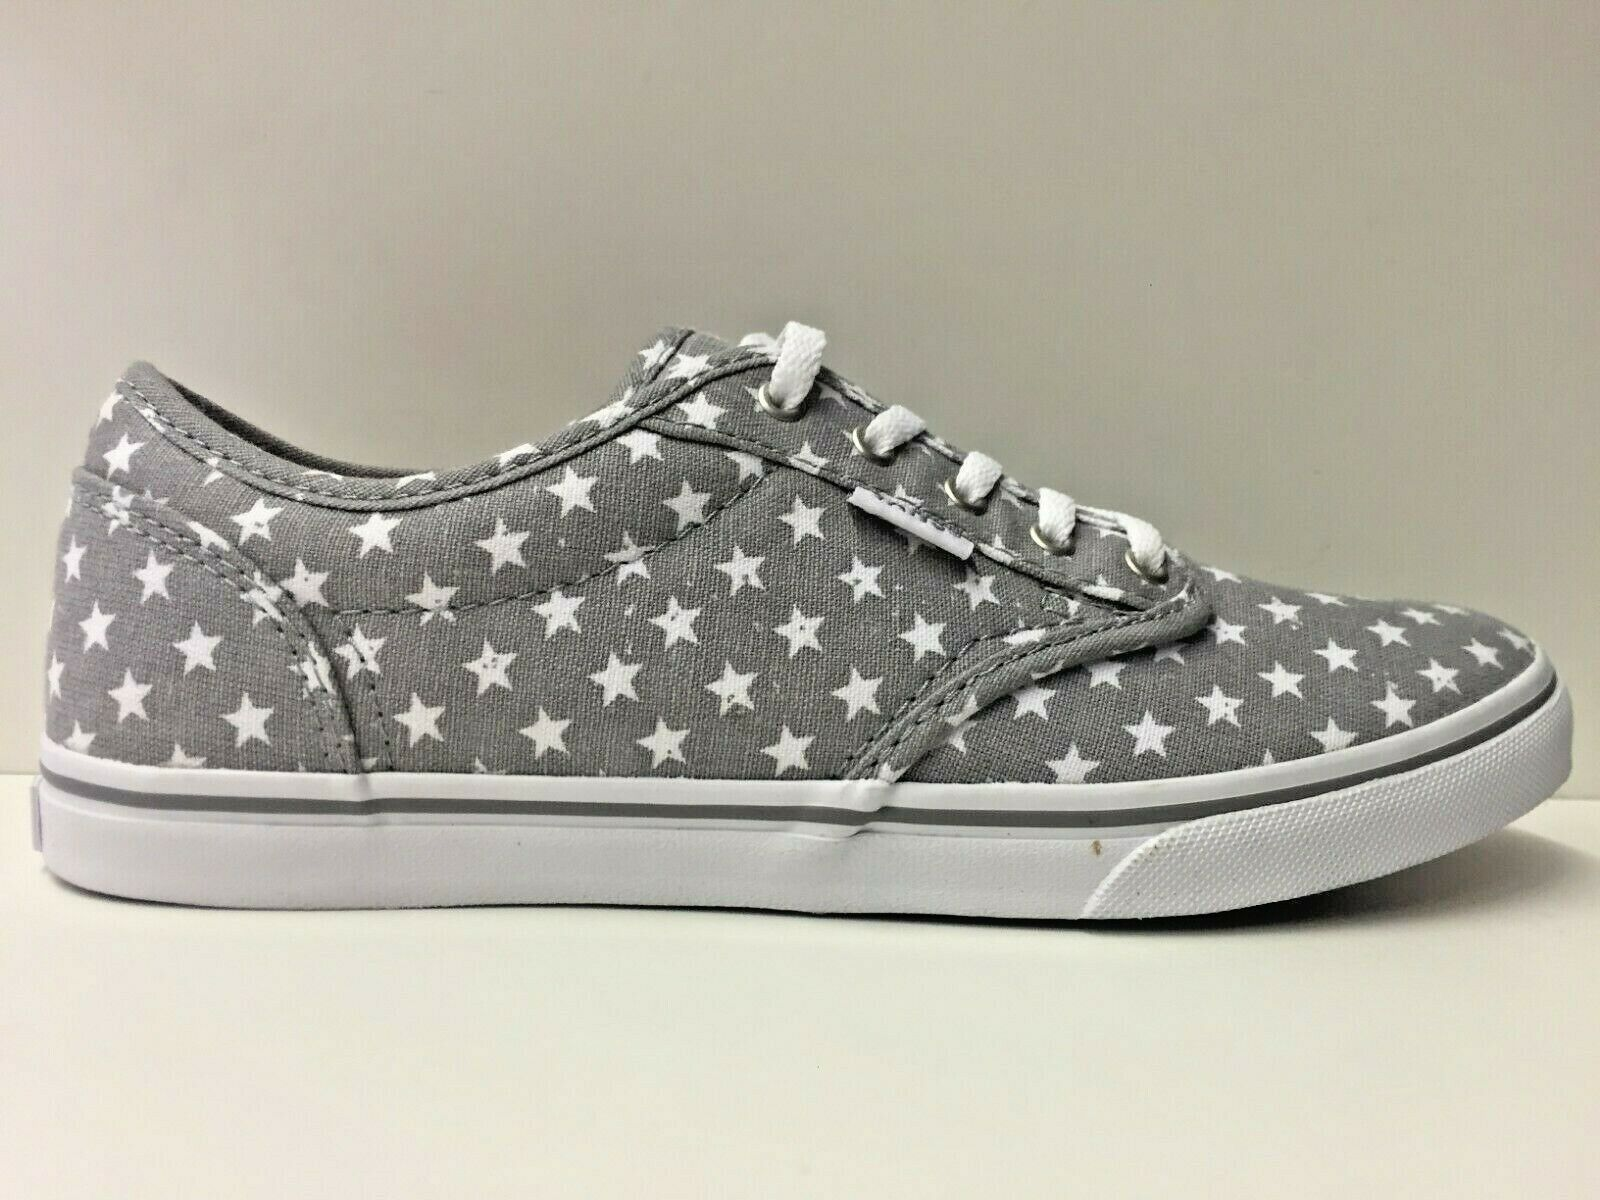 SCARPE SNEAKERS DONNA VANS VN-0 ZUOFES ATWOOD LOW FROST GRAY TELA PE ORIGINALE